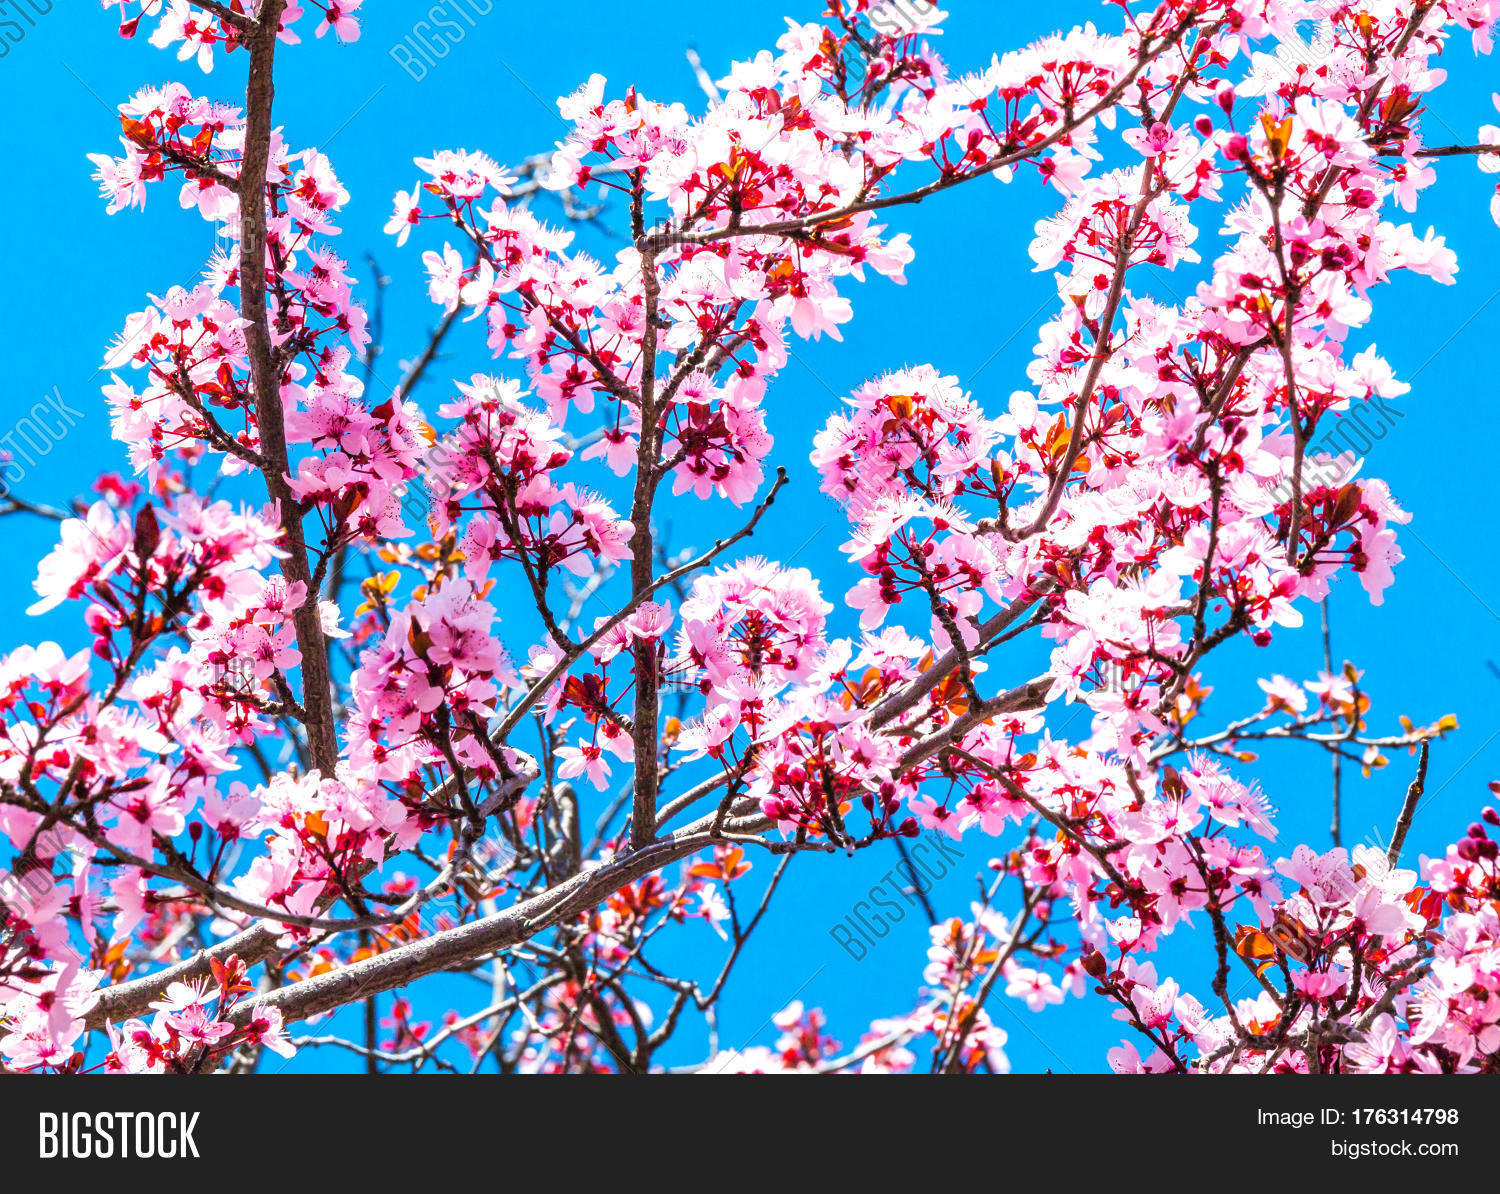 cherry tree big and beautiful singles Every spring, cherry blossoms erupt across the globe, drawing nature seekers far  and wide to observe the stunning pale pink flowers in their.